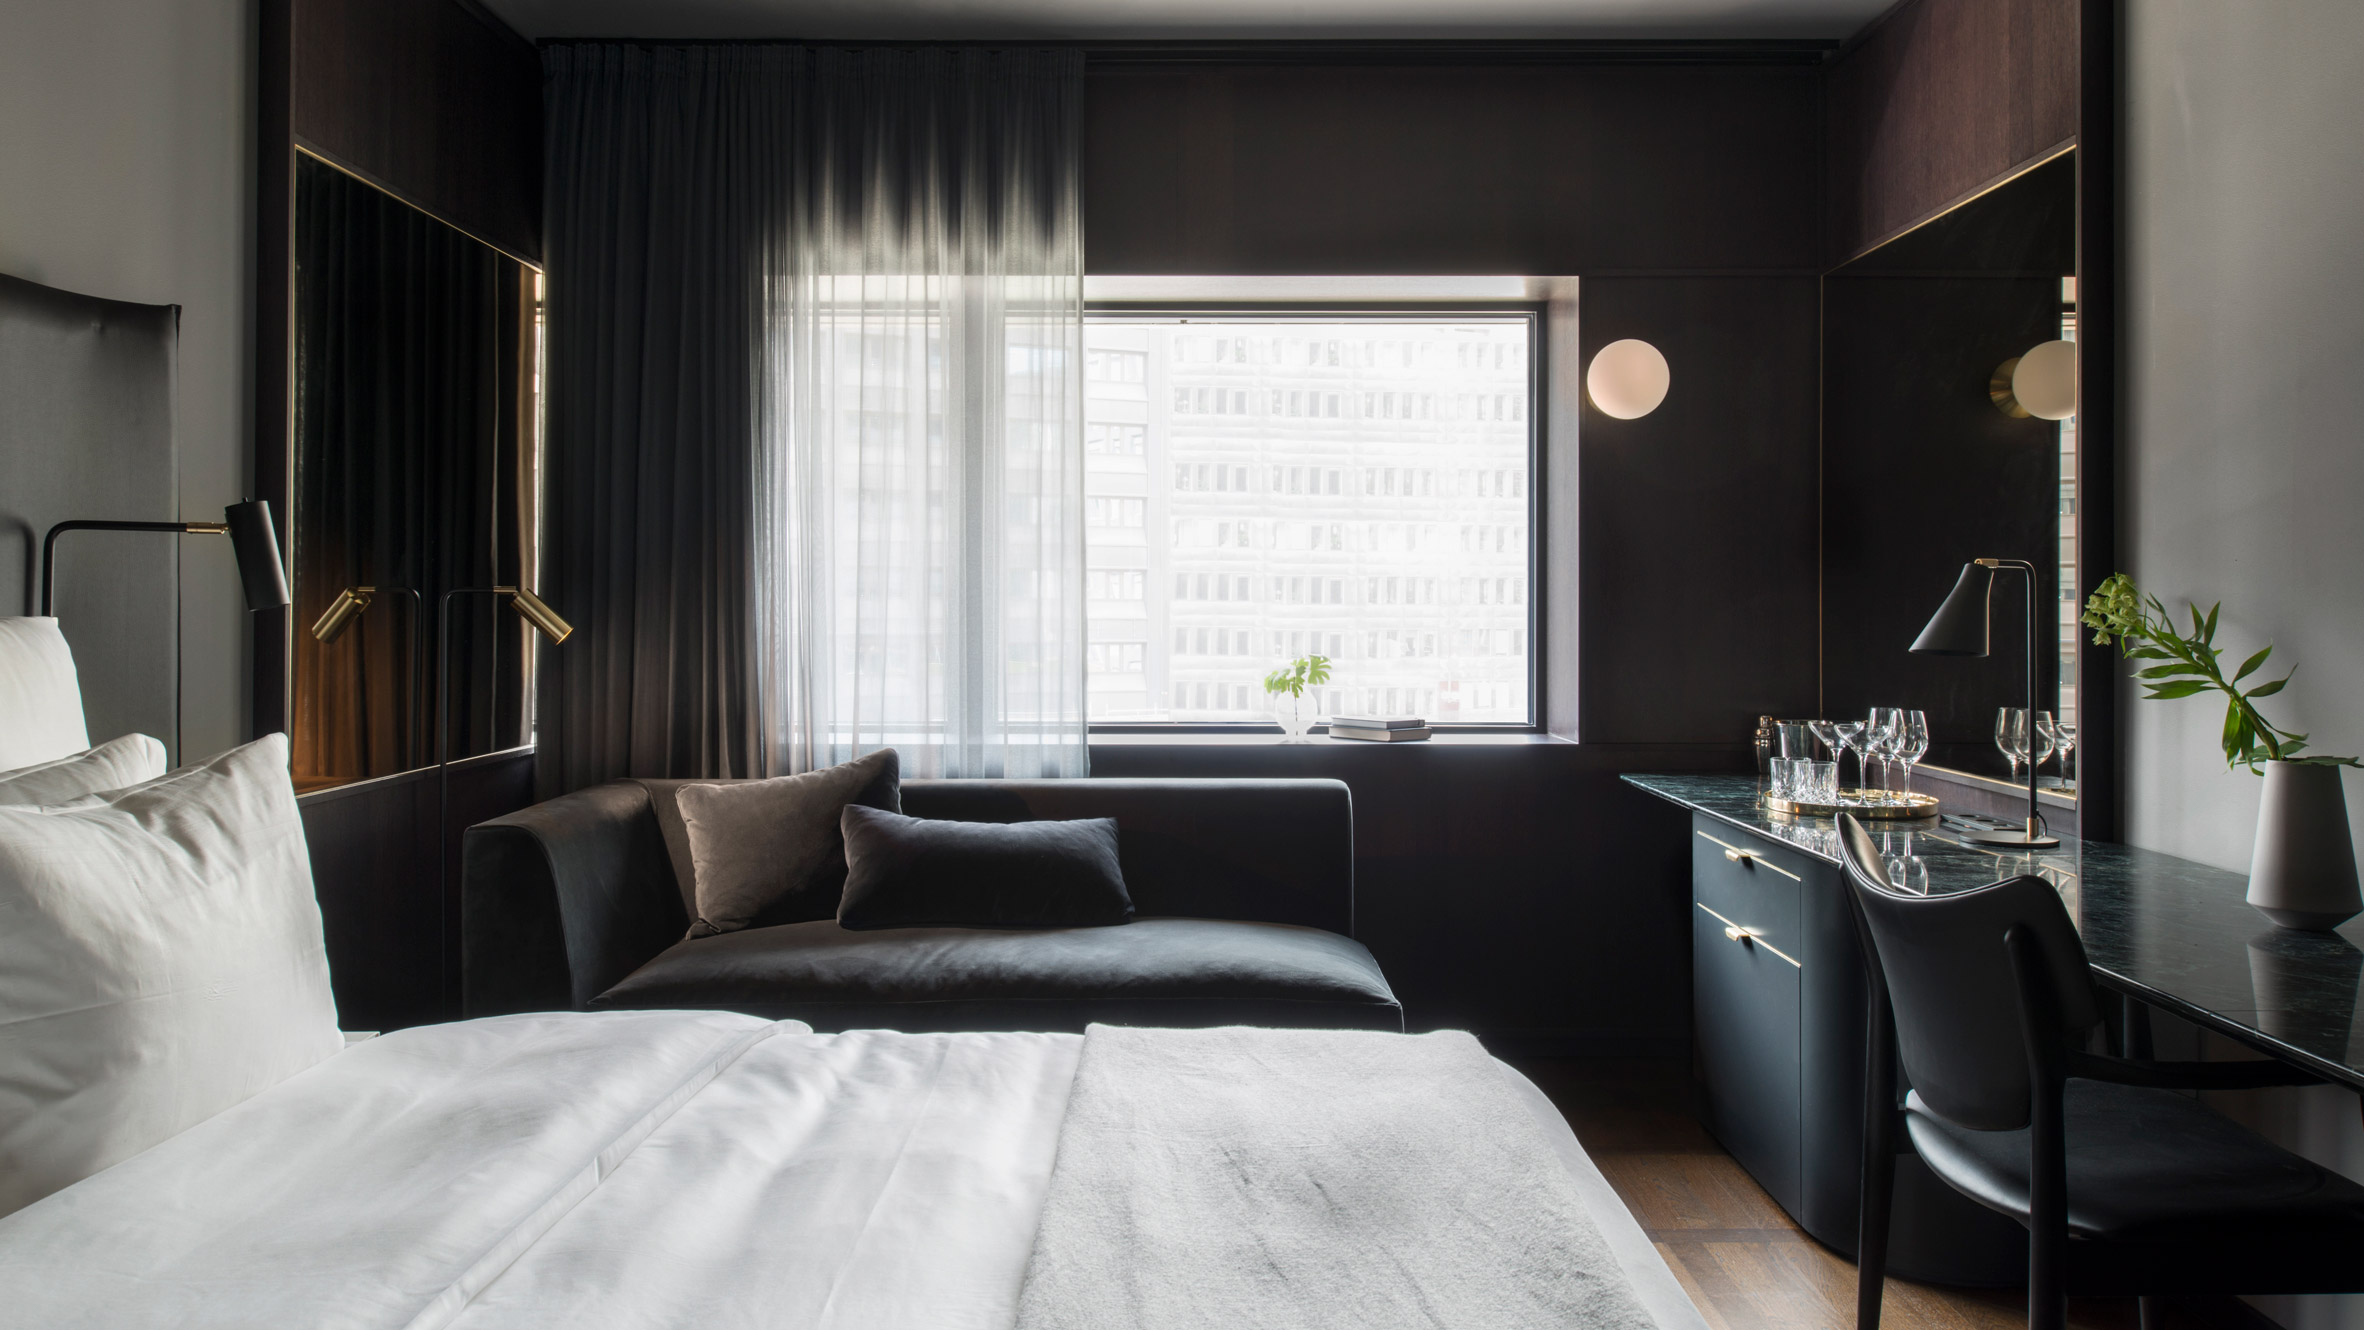 70s Brutalist high rise becomes swanky hotel in Stockholm. Interior Design   Curbed